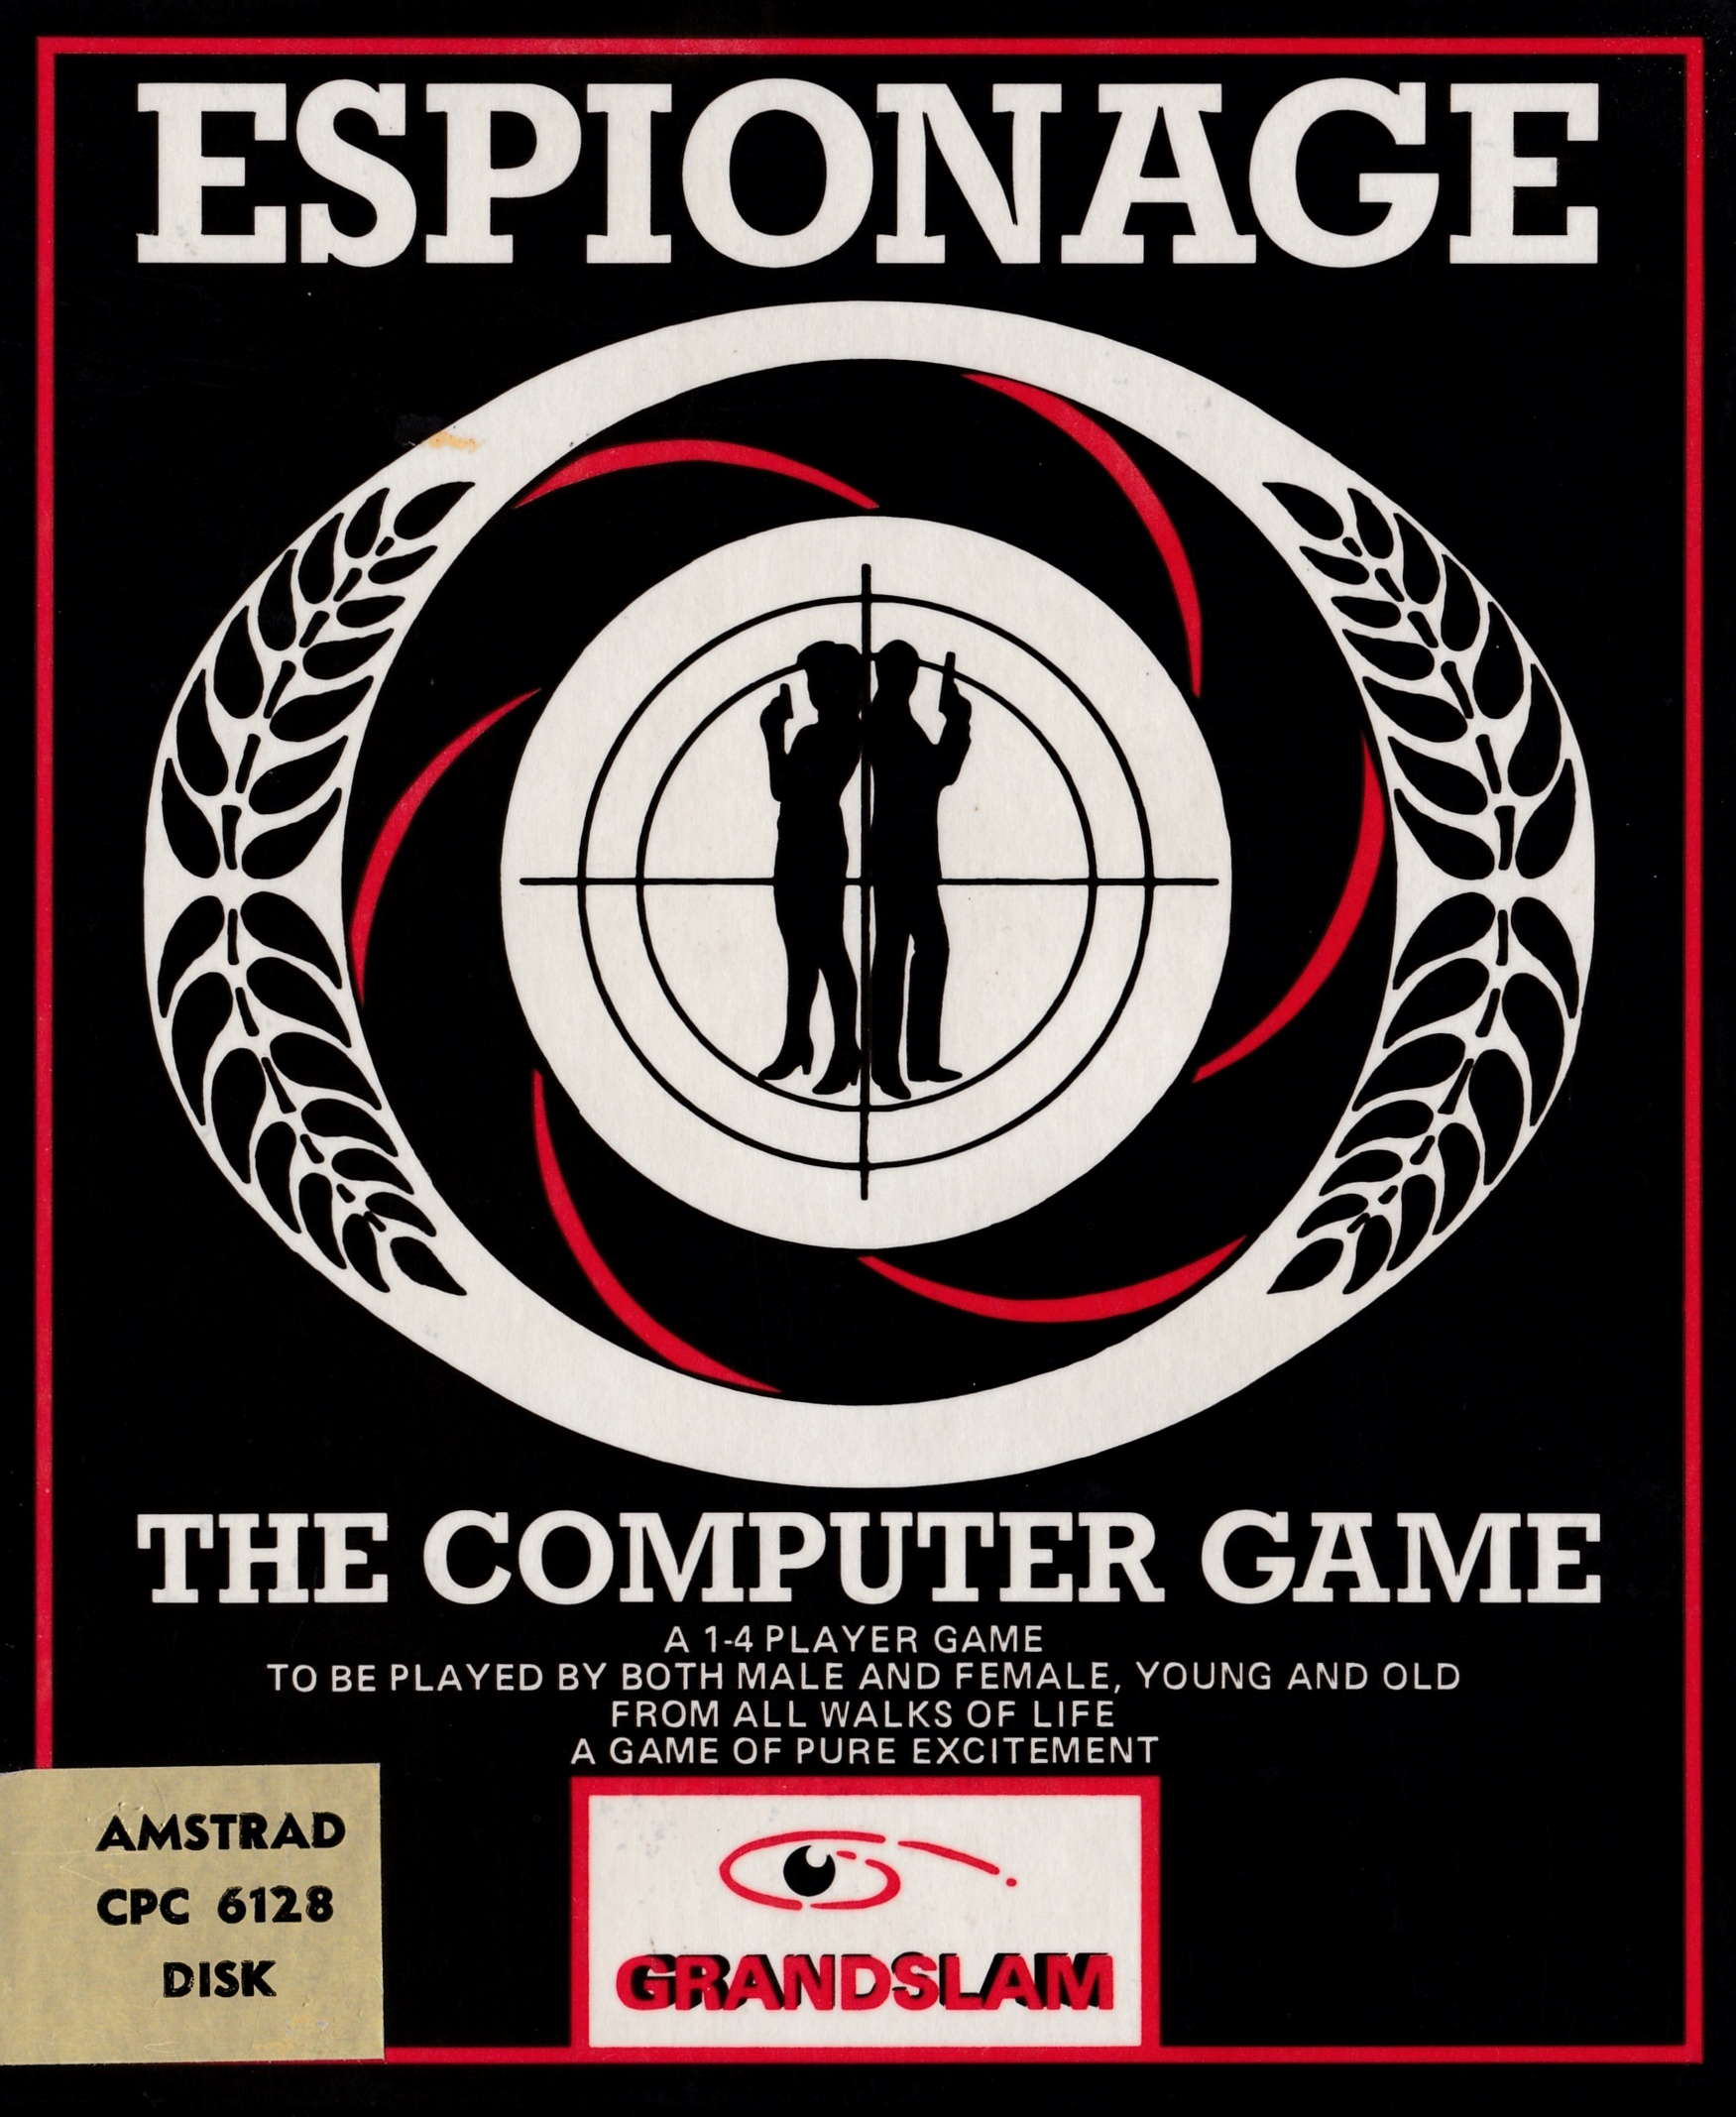 screenshot of the Amstrad CPC game Espionage by GameBase CPC